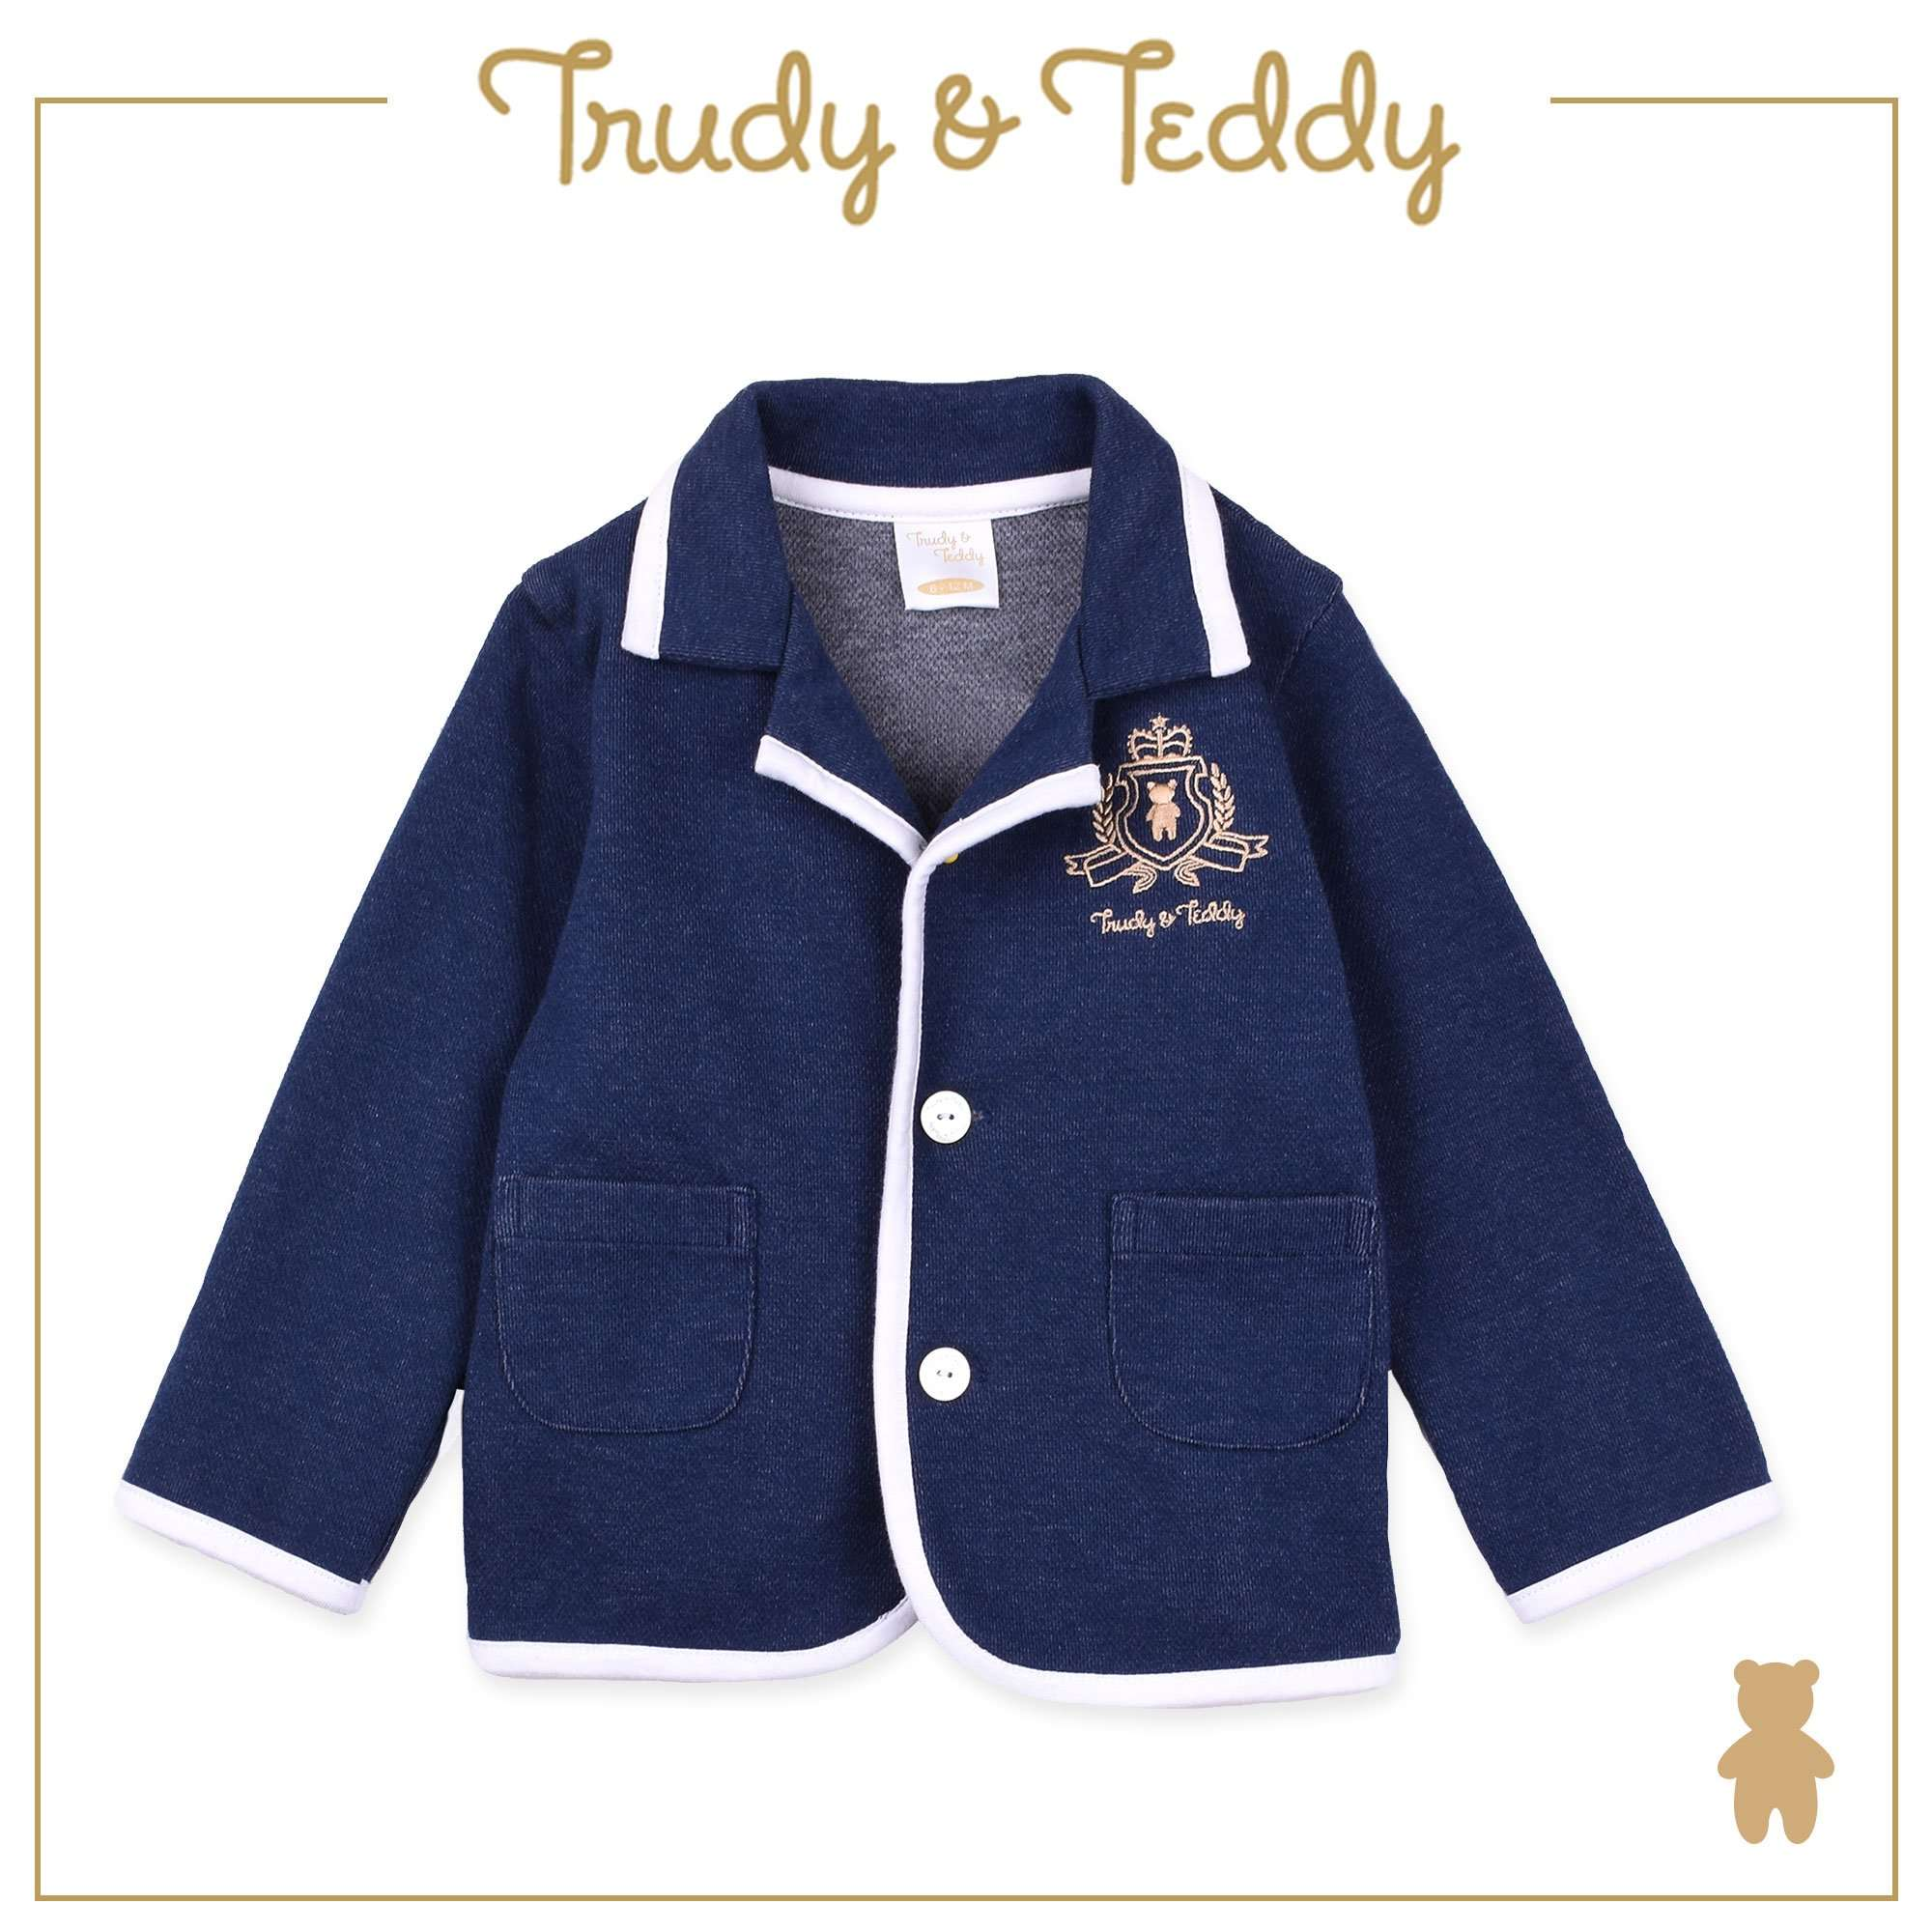 Trudy & Teddy Toddler to Kid Boy Blazer - Navy T922002-1610-L9 : Buy Trudy & Teddy online at CMG.MY